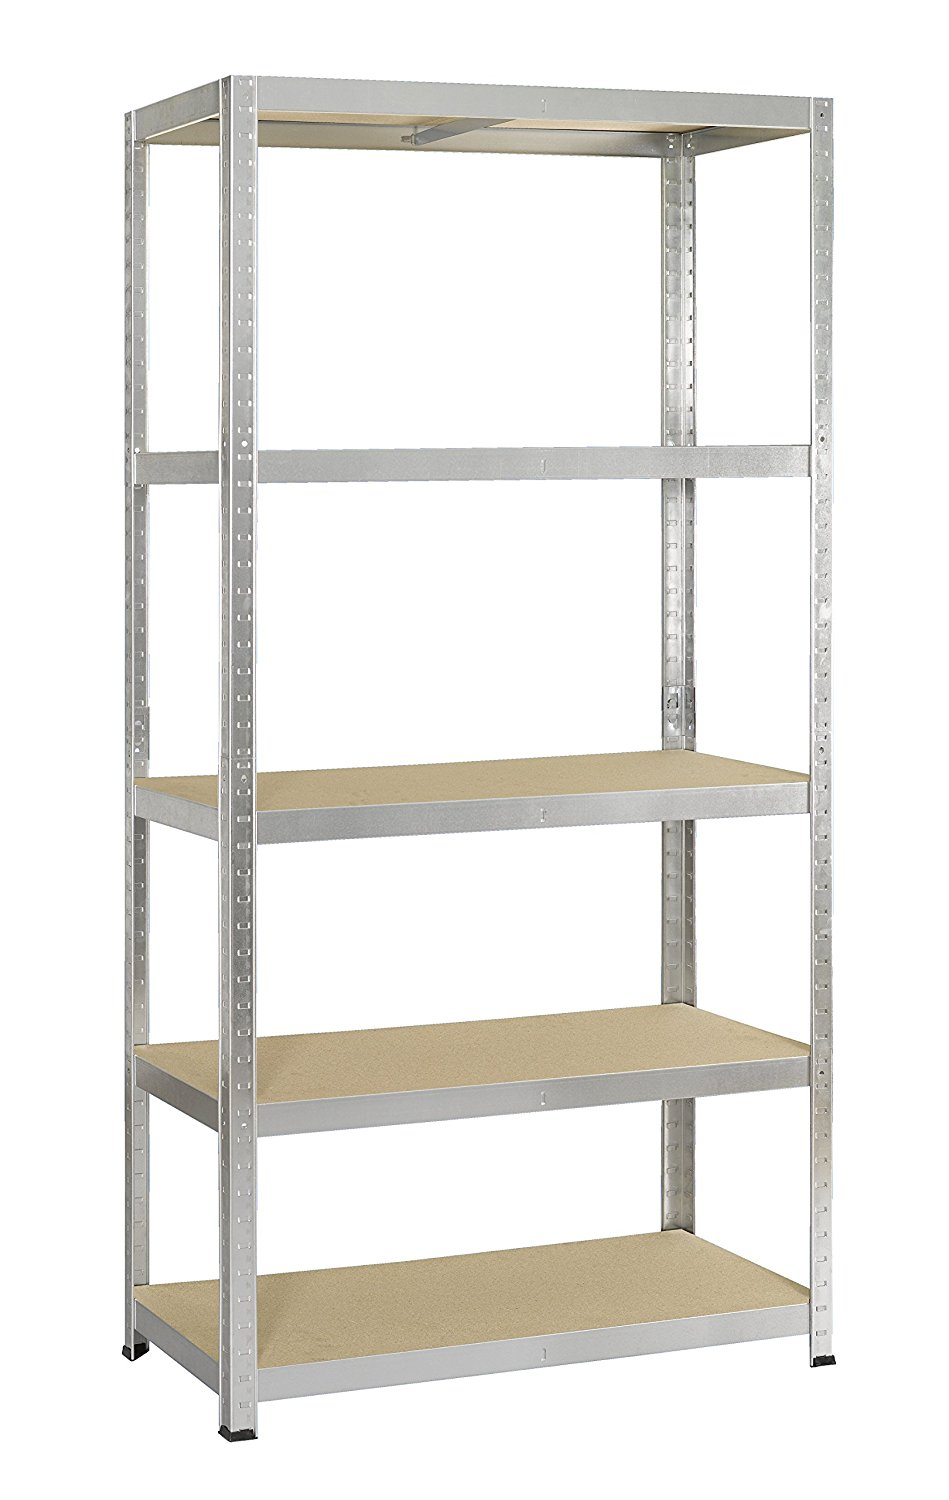 Etagere metallique carrefour for Etageres murales metalliques